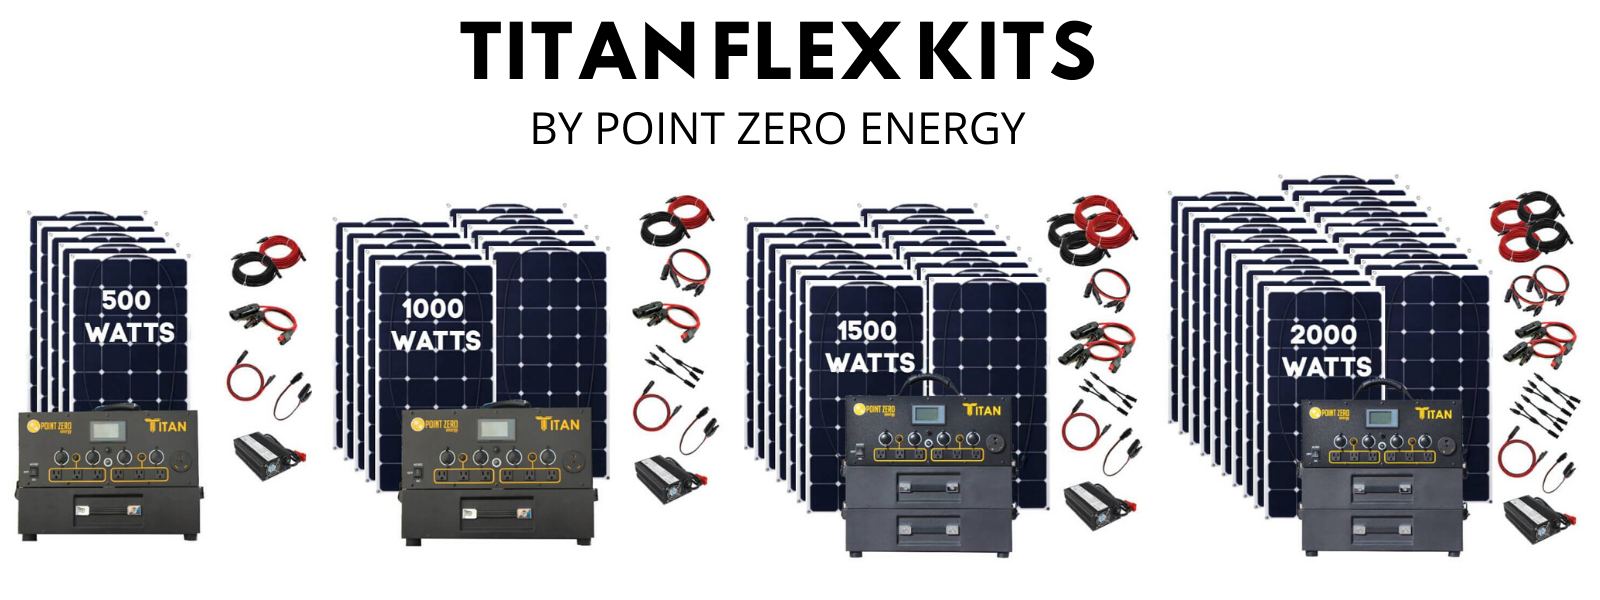 Picture of the Different Titan Flex Kits - 500 watts, 1000watts, 1500 watts and 2000 watts- Point Zero Energy Generators